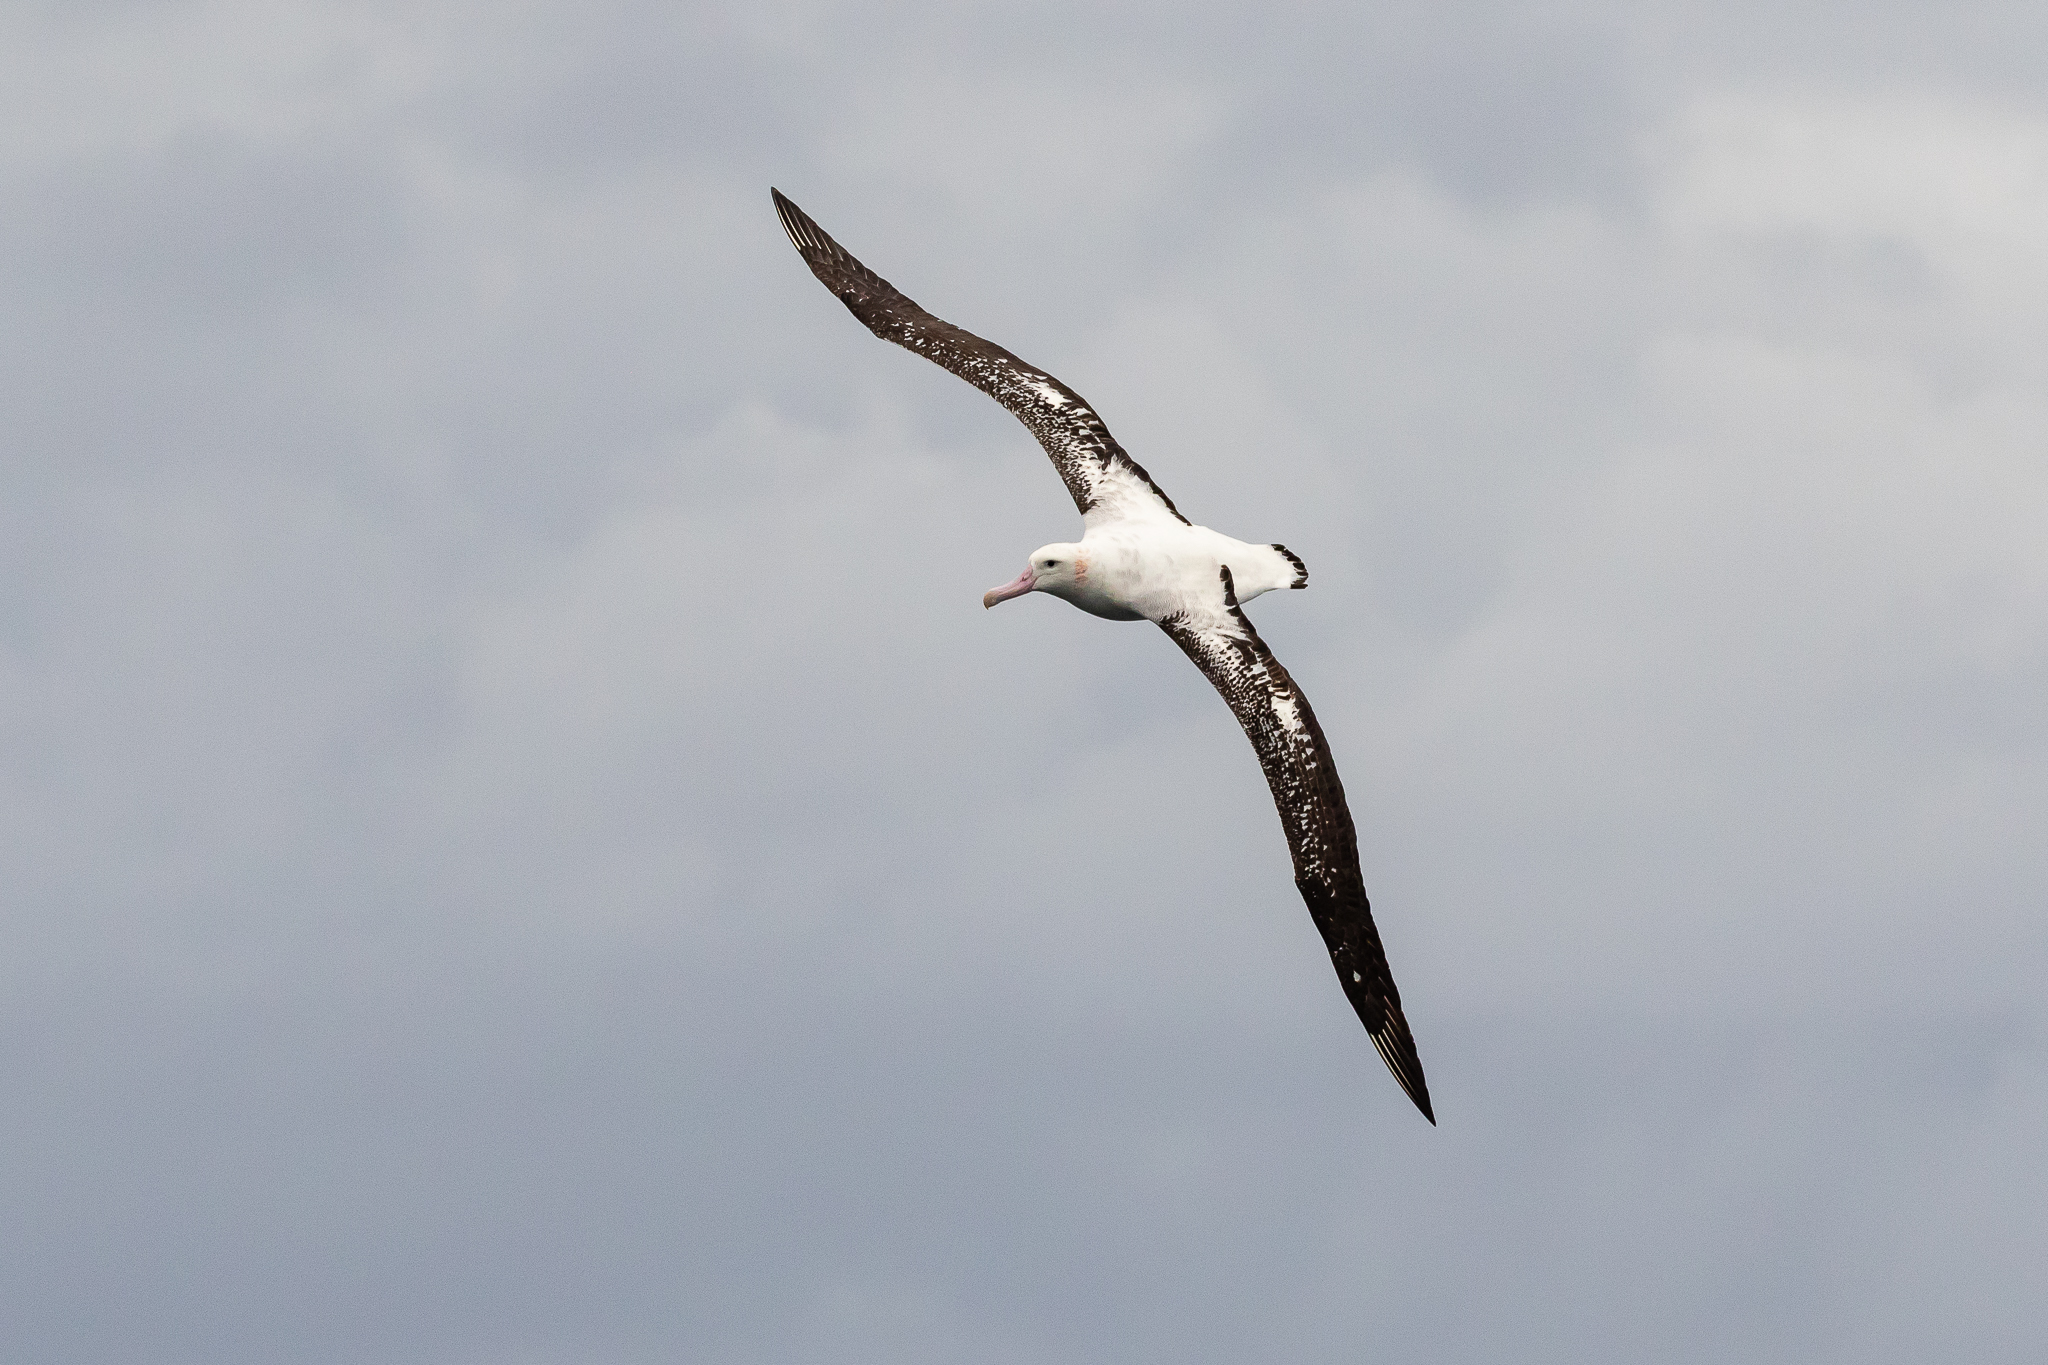 The Wandering Albatross is one of the world's largest birds with a wing-span that reaches 3.5 metres. Wandering Albatrosses may travel more than 100,000 km in one year, crossing the oceans many times over.